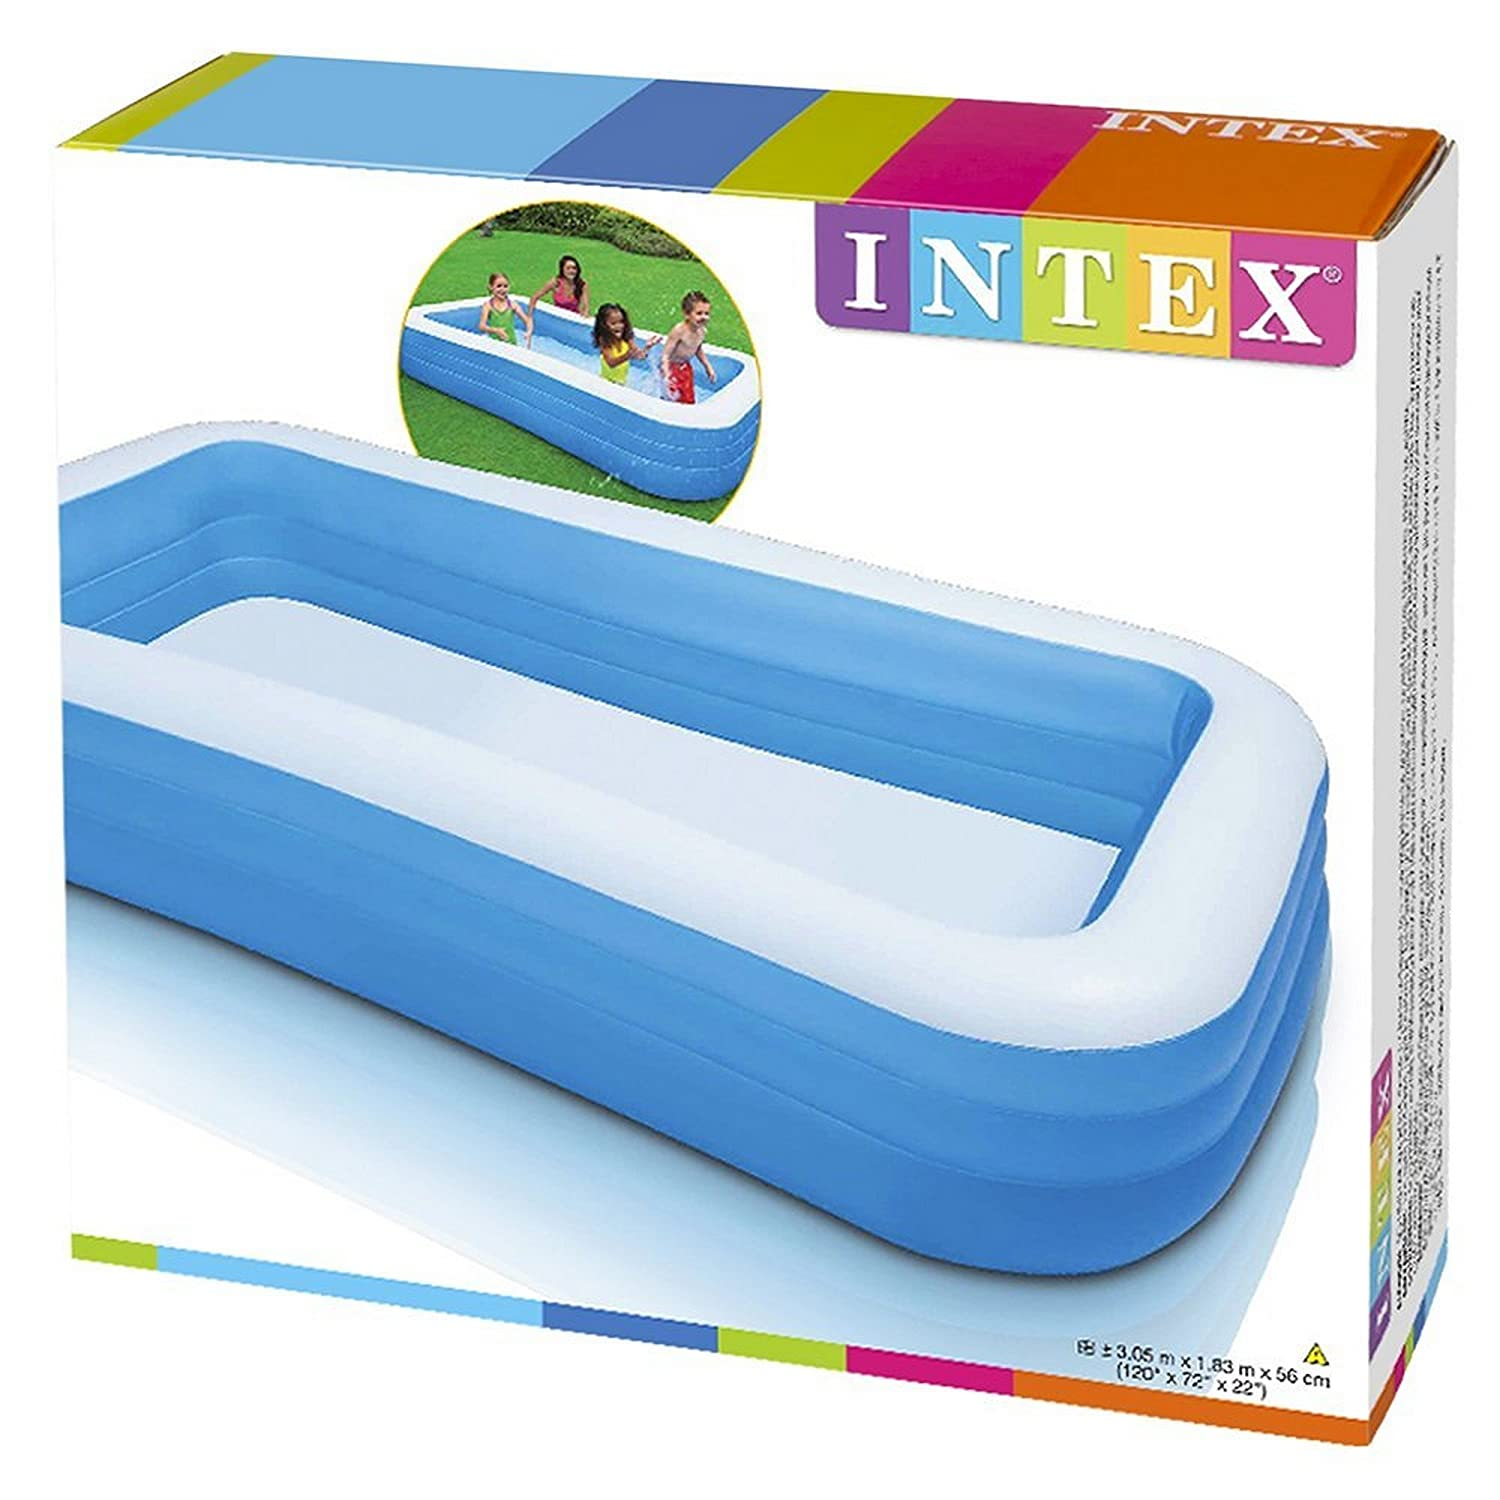 Piscine rectangulaire gonflable remc homes for Piscine gonflable rectangulaire